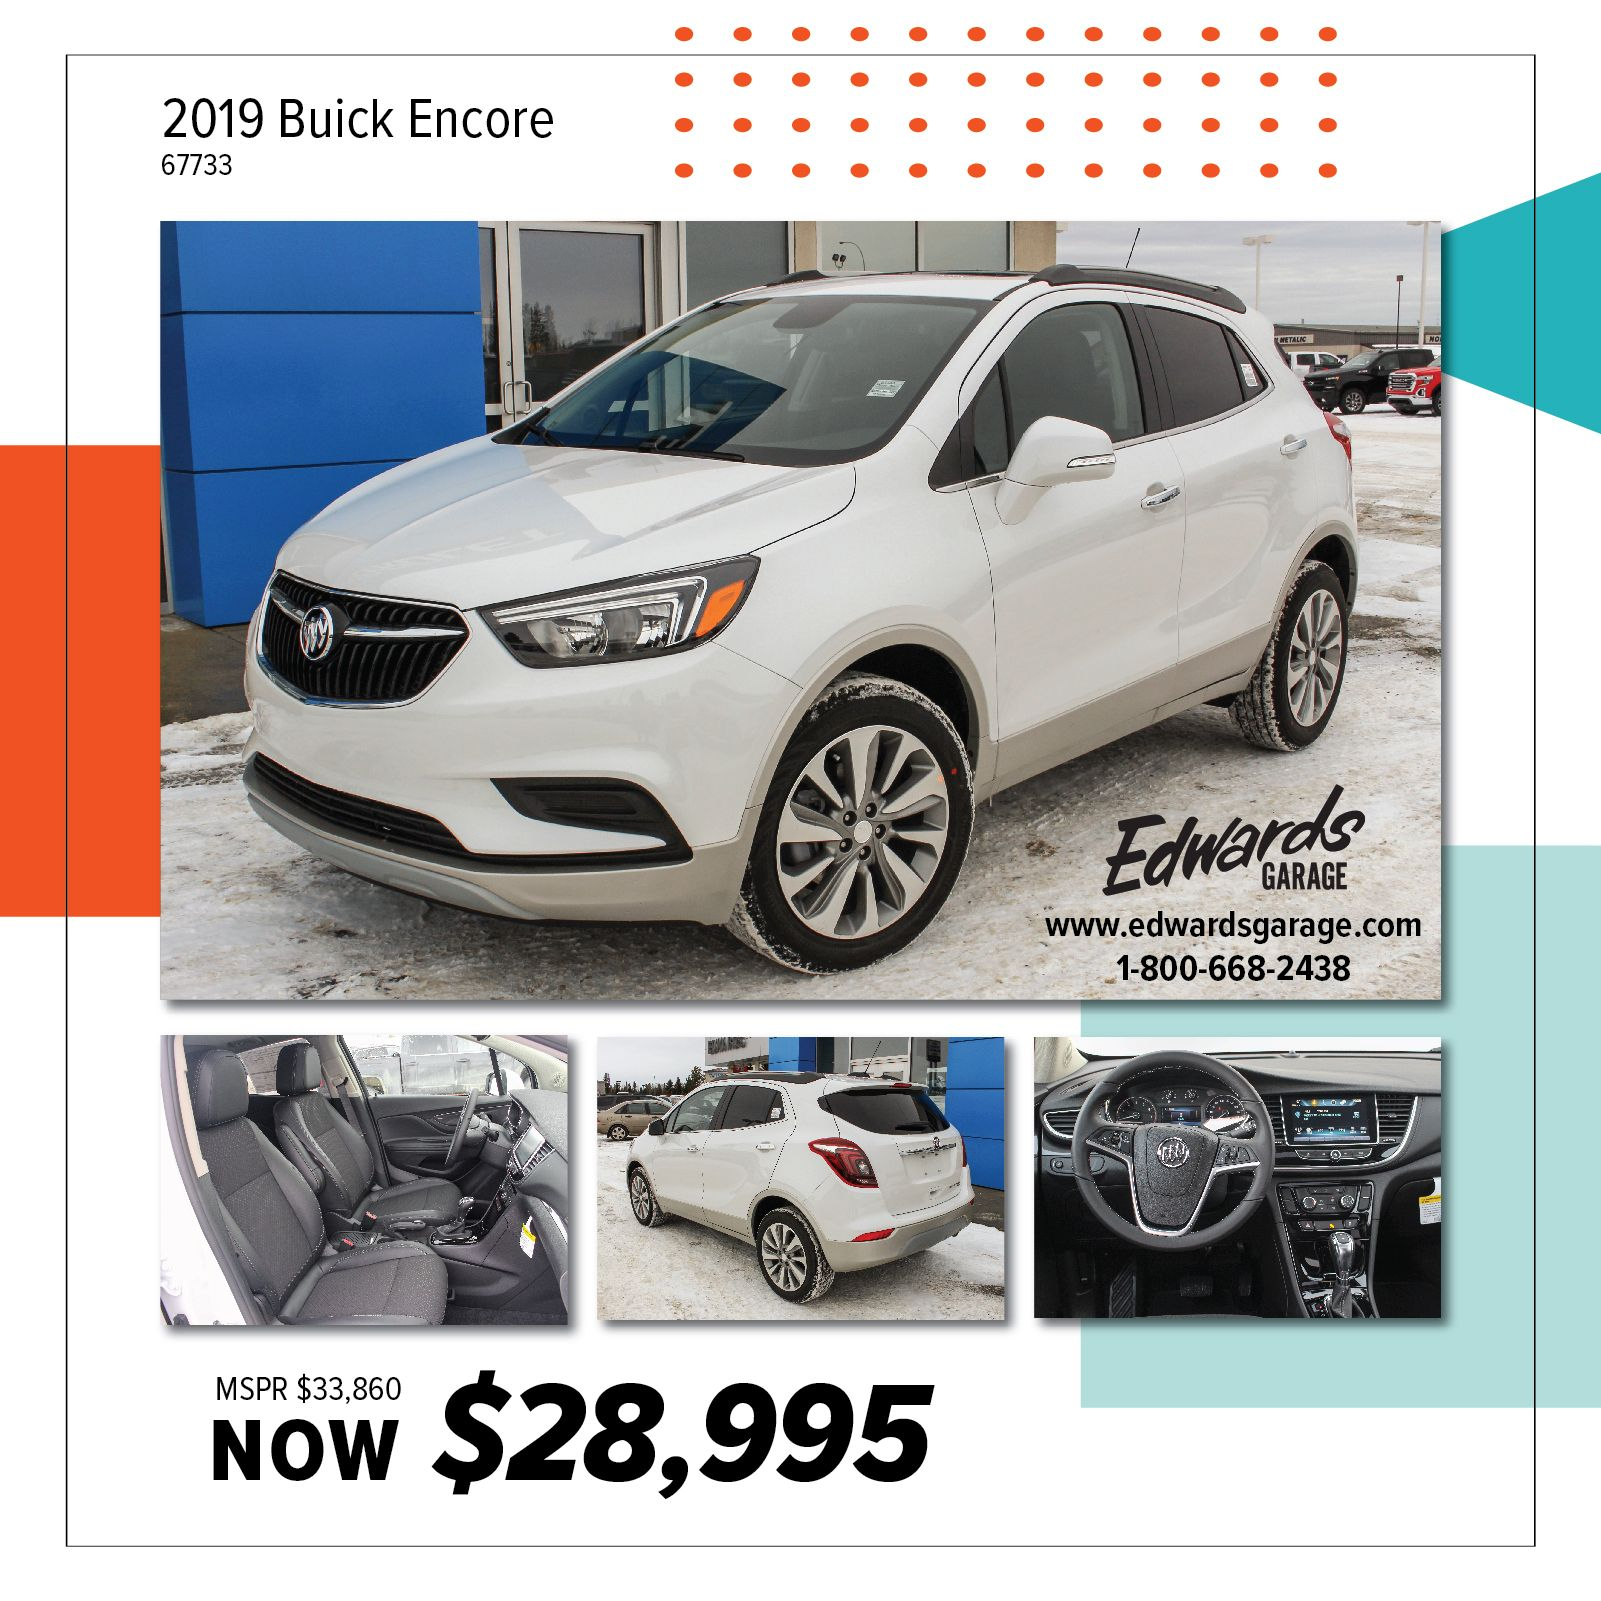 4 New Buick Cars Trucks And Suvs In Stock Serving Rocky Mountain House Condor Red Deer Ab Buick Cars Buick Encore Buick